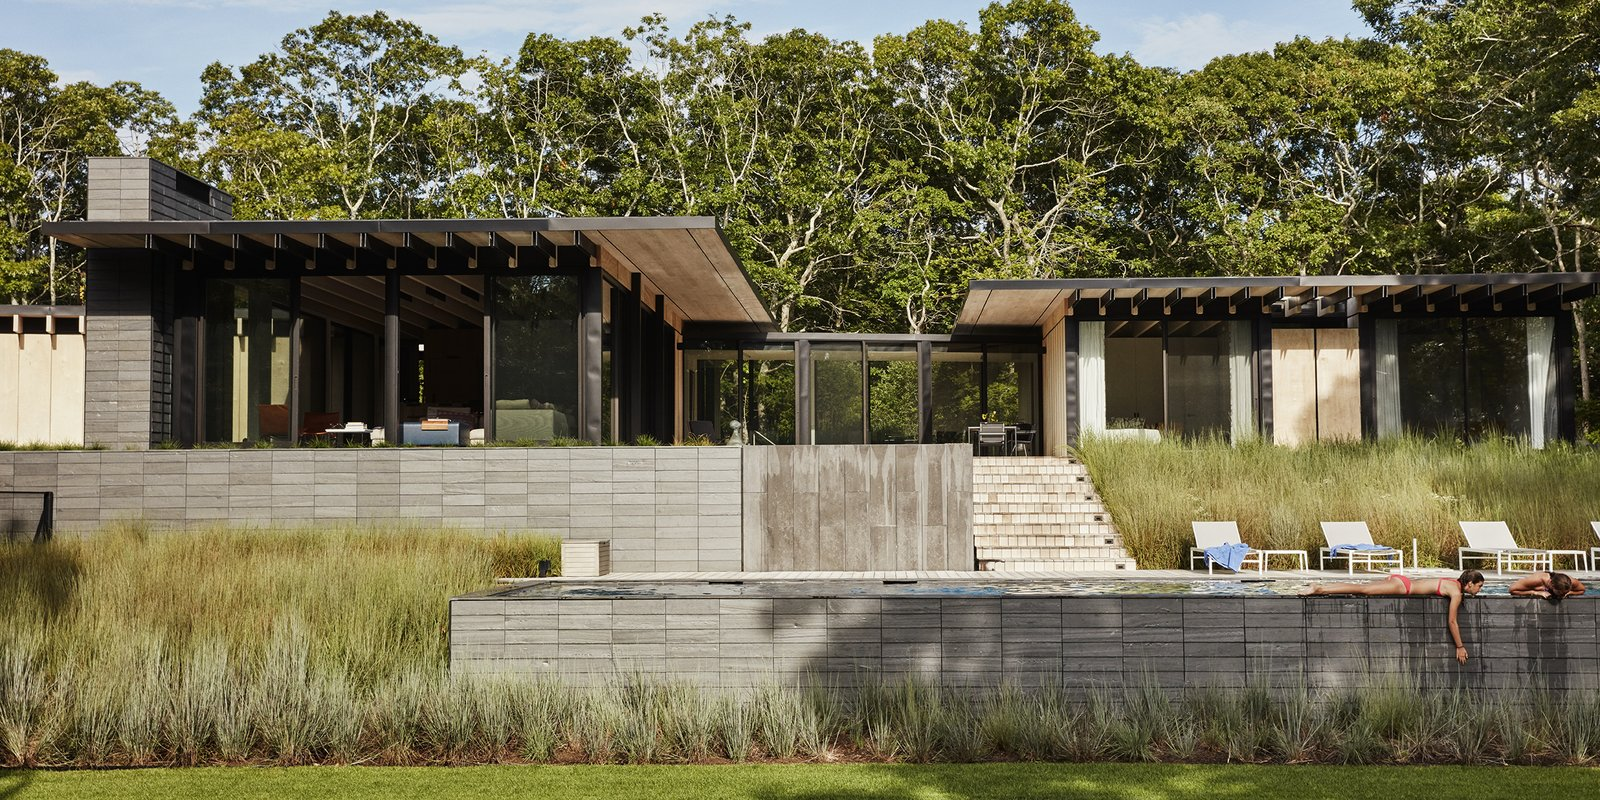 Exterior, Concrete Siding Material, and House Building Type  Photo 1 of 11 in A Family Retreat in the Hamptons Bridles Wind, Water, and Light